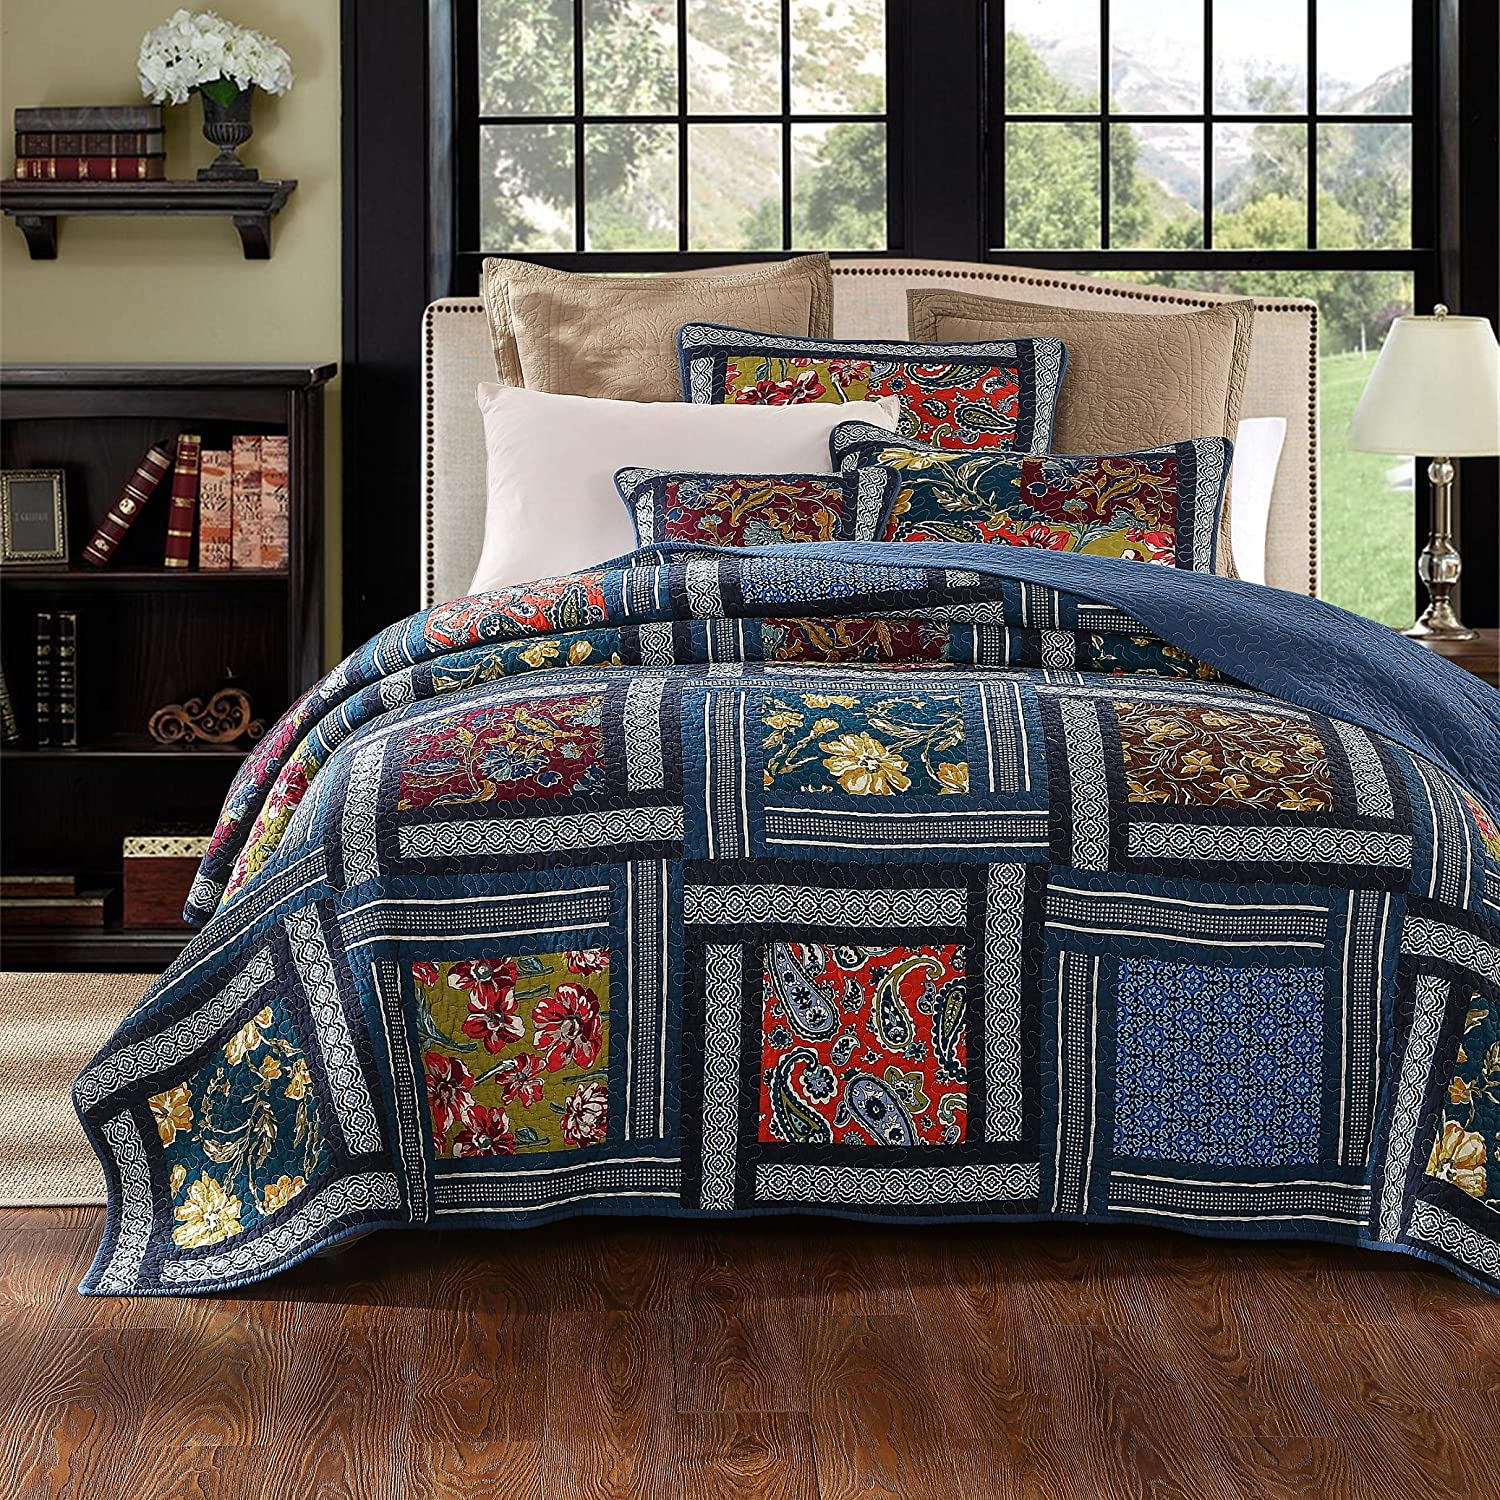 DaDa Bedding Bohemian Midnight Ocean Blue Sea Reversible Real Patchwork Quilted Bedspread Set